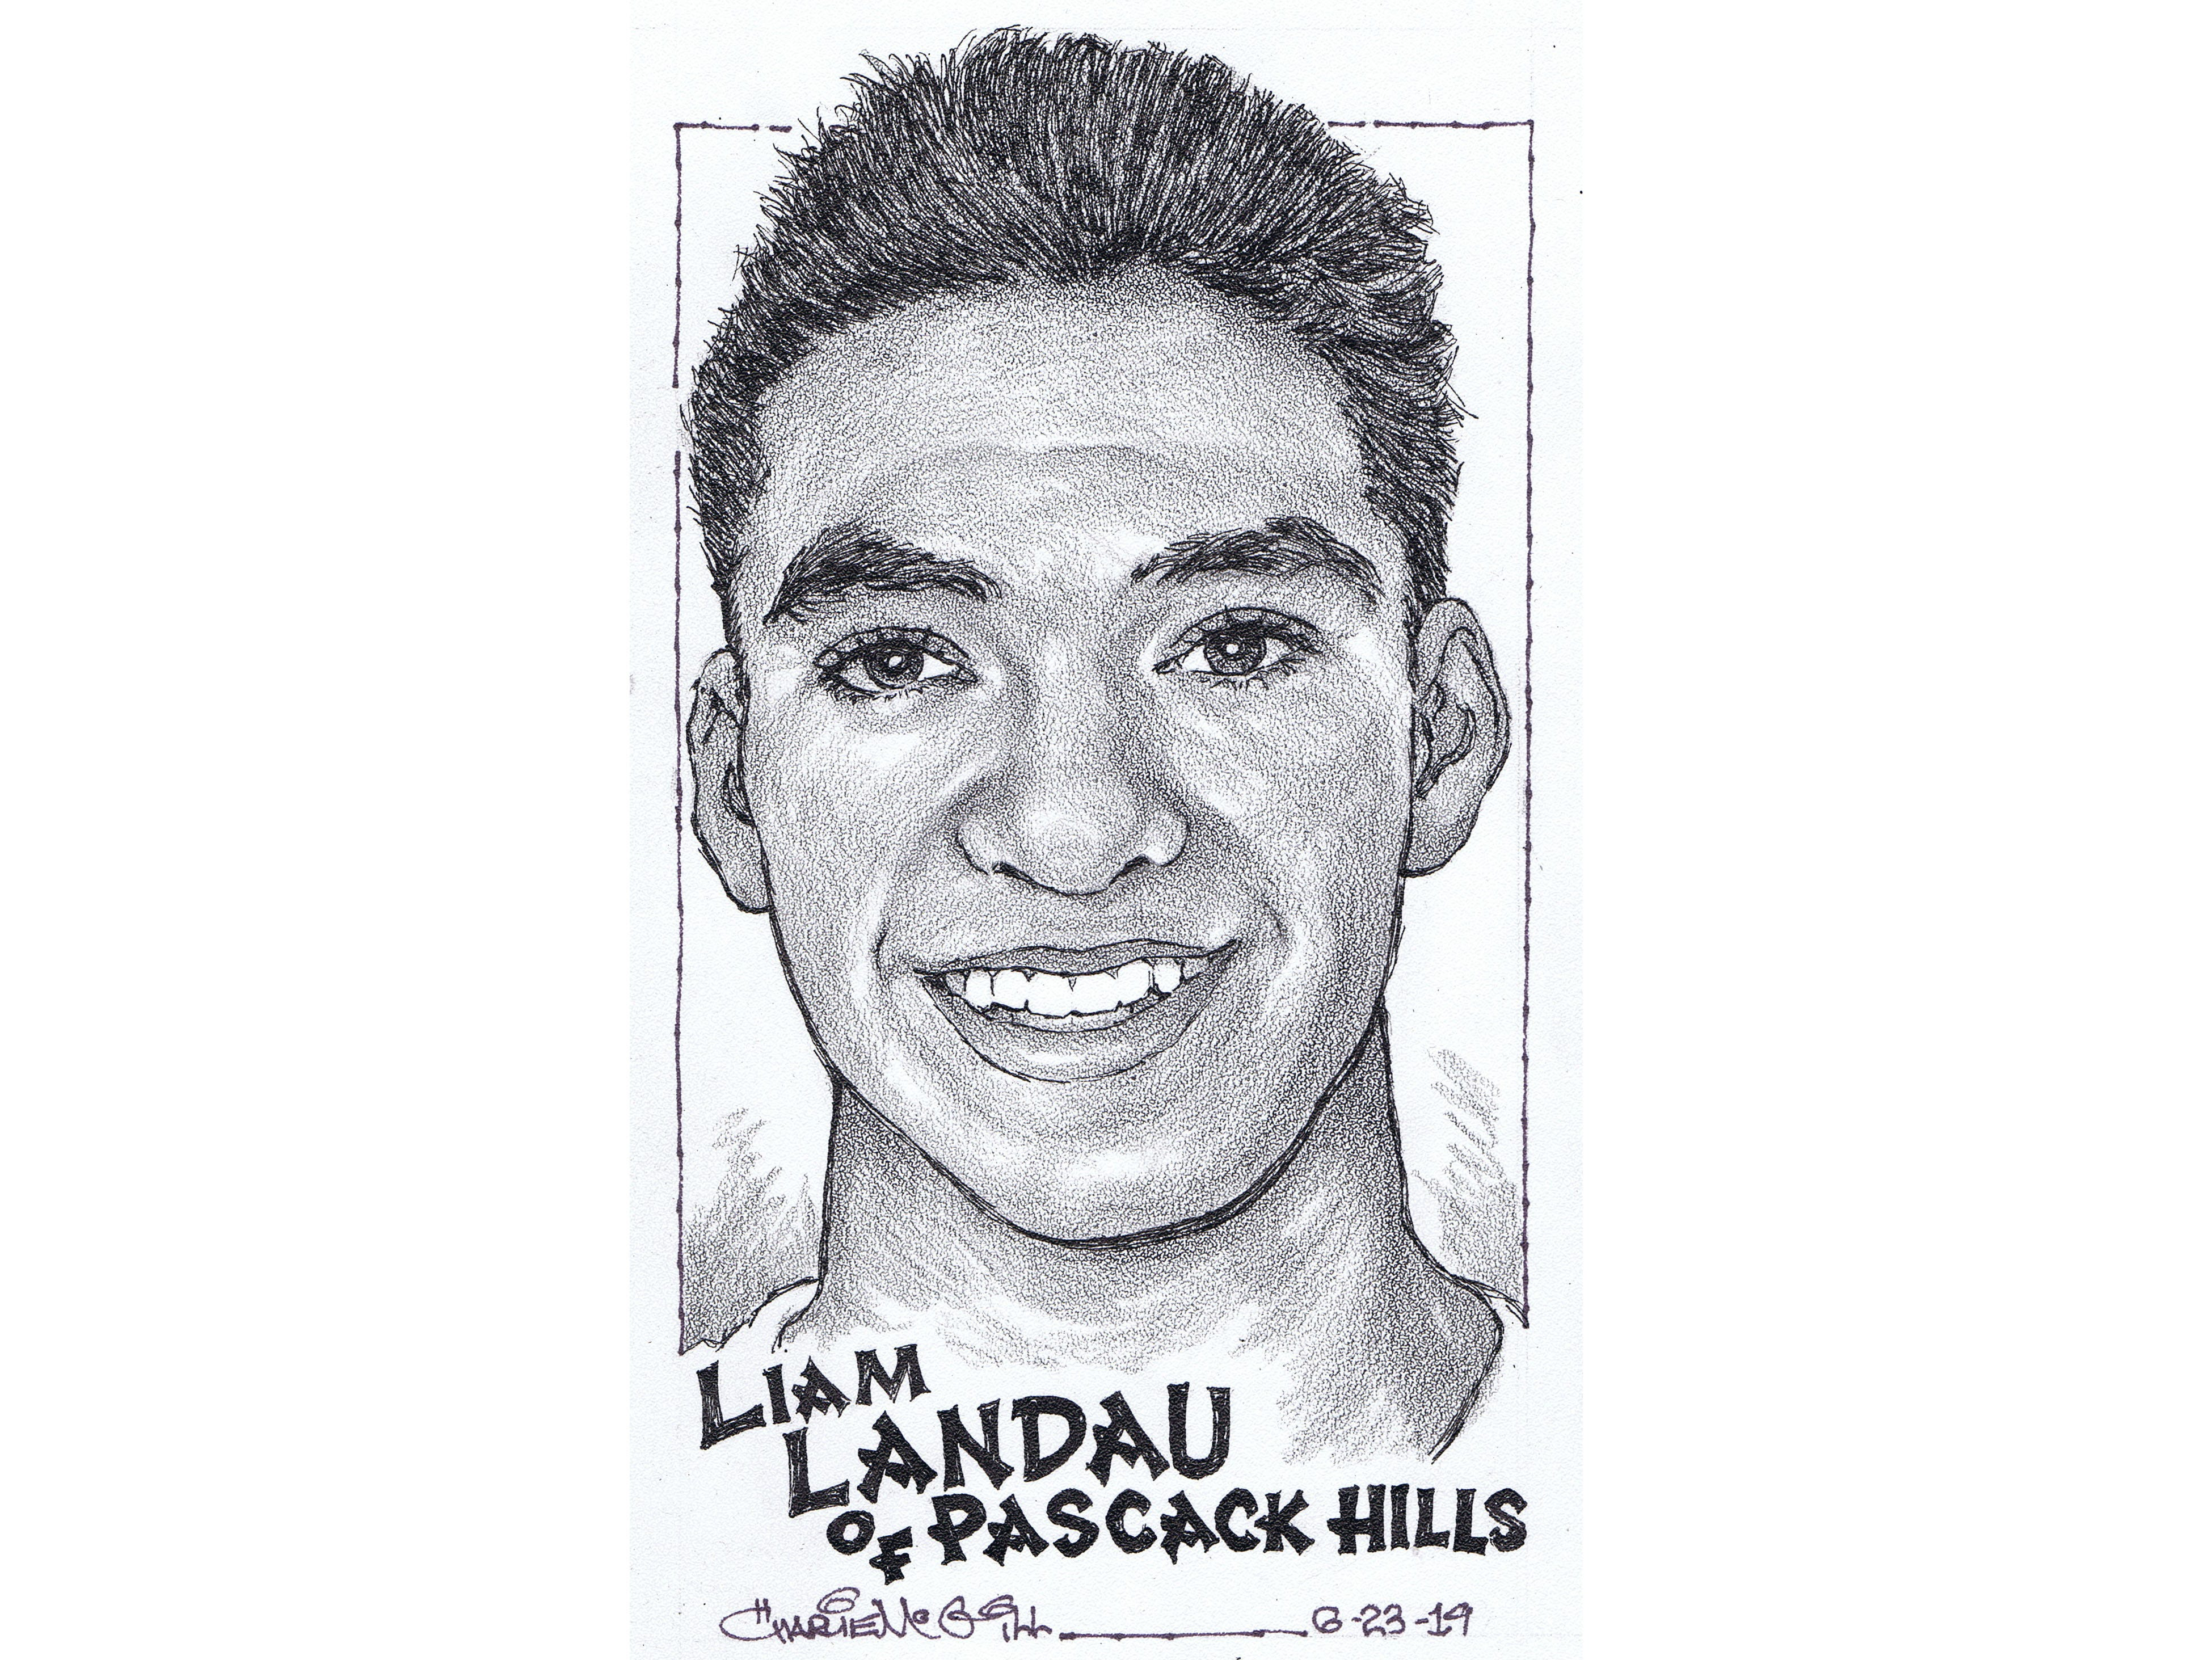 Liam Landau, Pascack Hills track and field